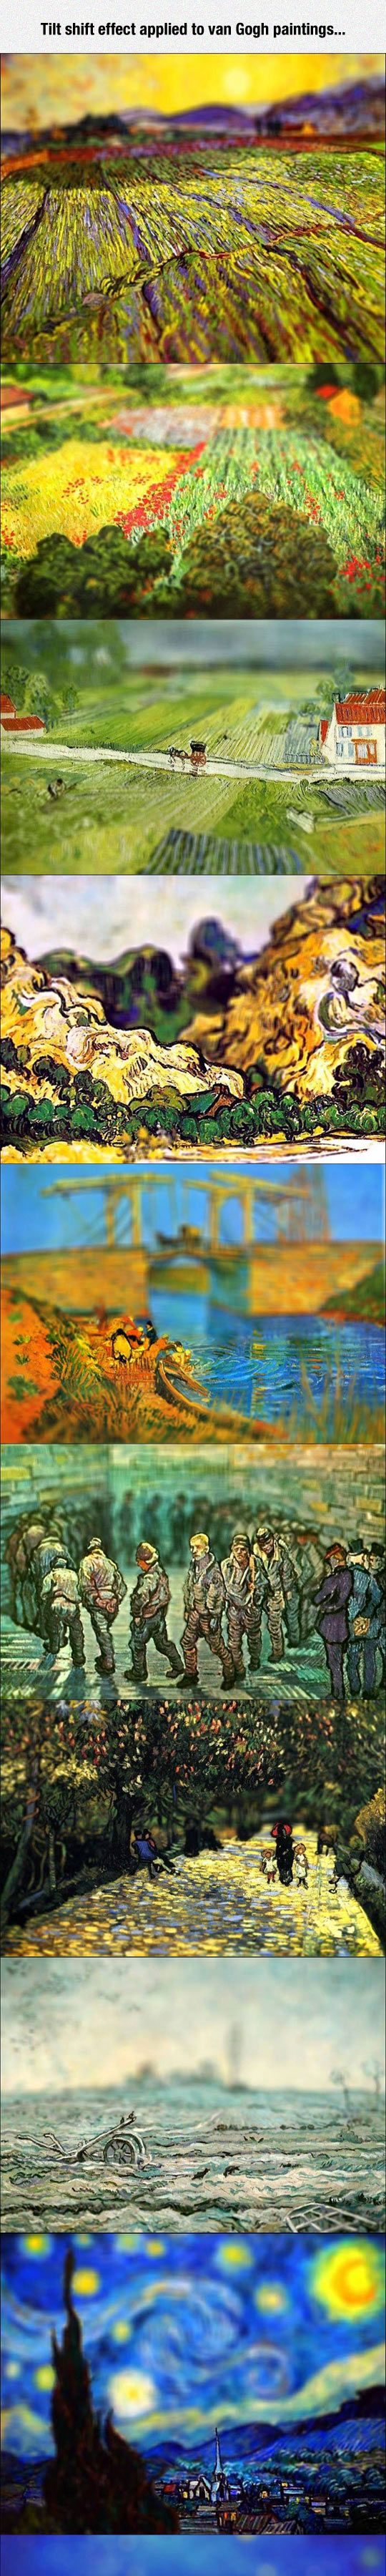 Van Gogh's Work From Another Perspective